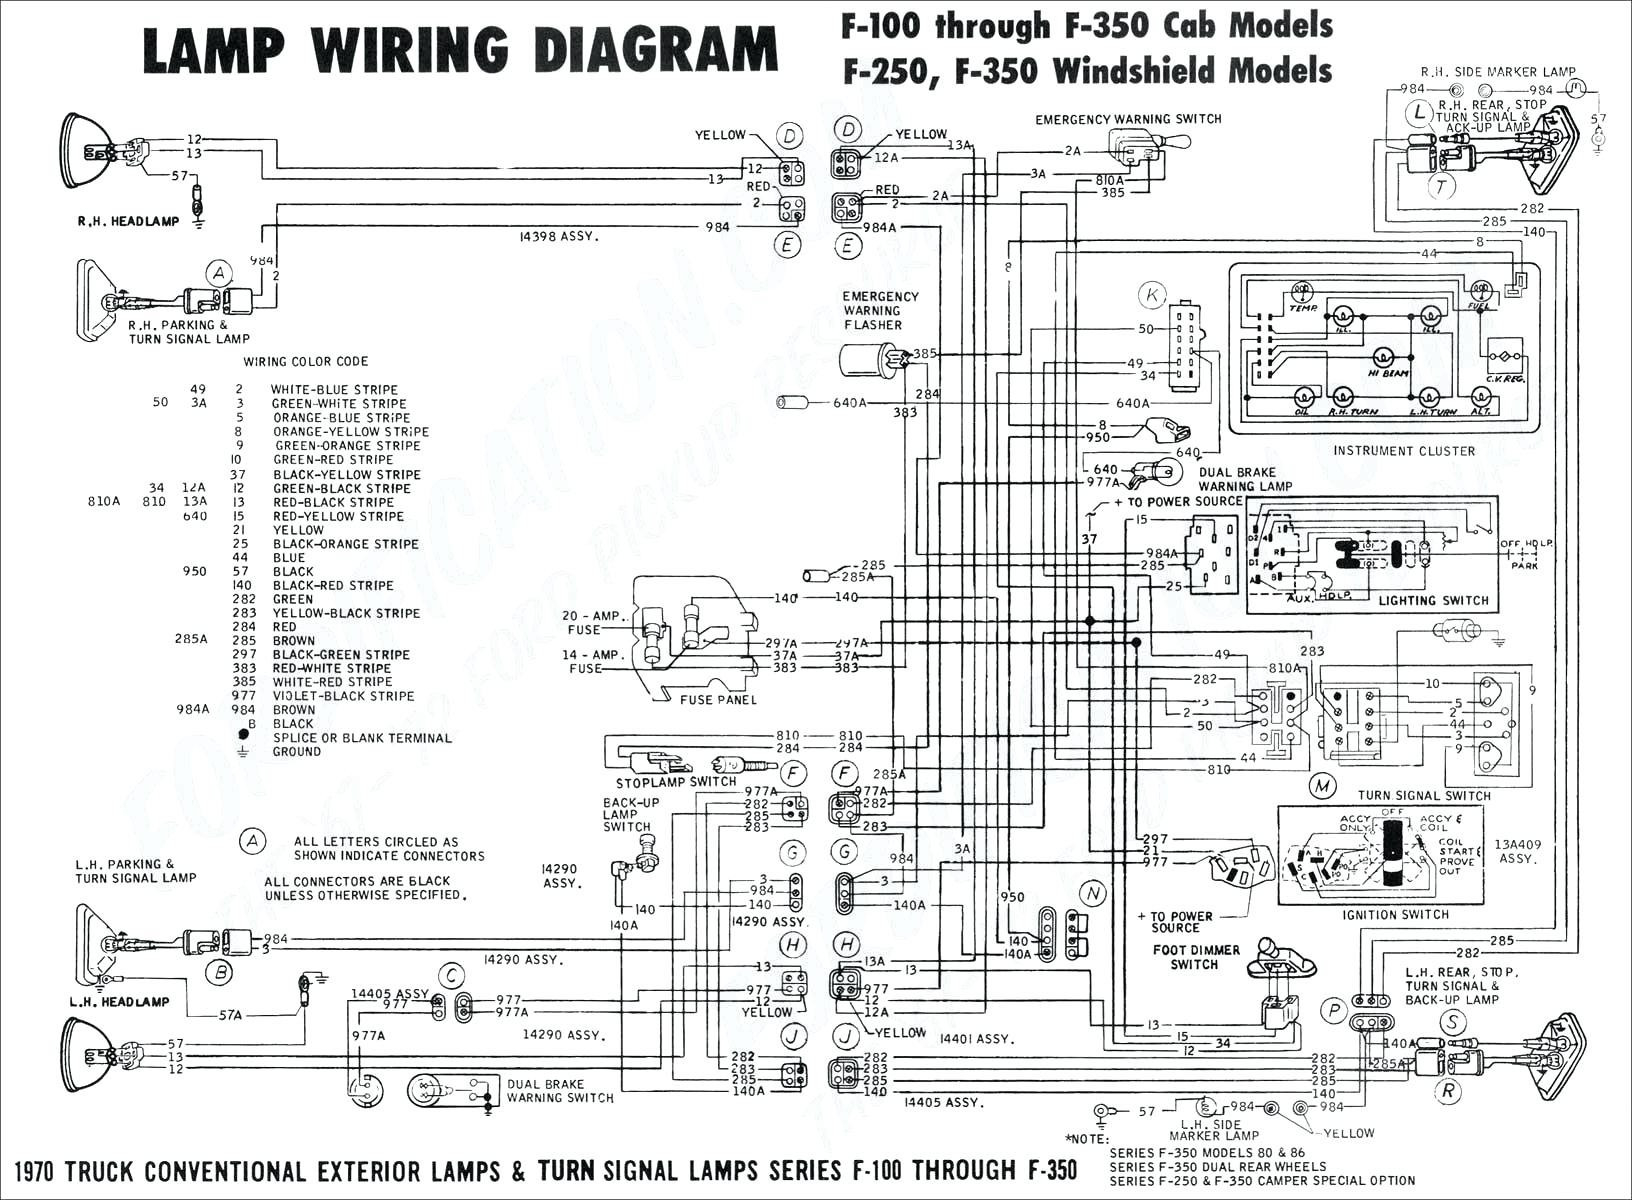 Ford Truck Wiring Diagrams on 1987 ford wiring diagram, 1993 ford radio wiring, 1970 chevy wiring diagram, 1993 ford explorer engine diagram, 1997 ford wiring diagram, 1984 ford wiring diagram, 2003 ford wiring diagram, 1993 ford f150 diagram, 1986 ford wiring diagram, 1992 ford wiring diagram, 2005 ford wiring diagram, 2007 ford wiring diagram, 1991 ford wiring diagram, 1996 ford wiring diagram,